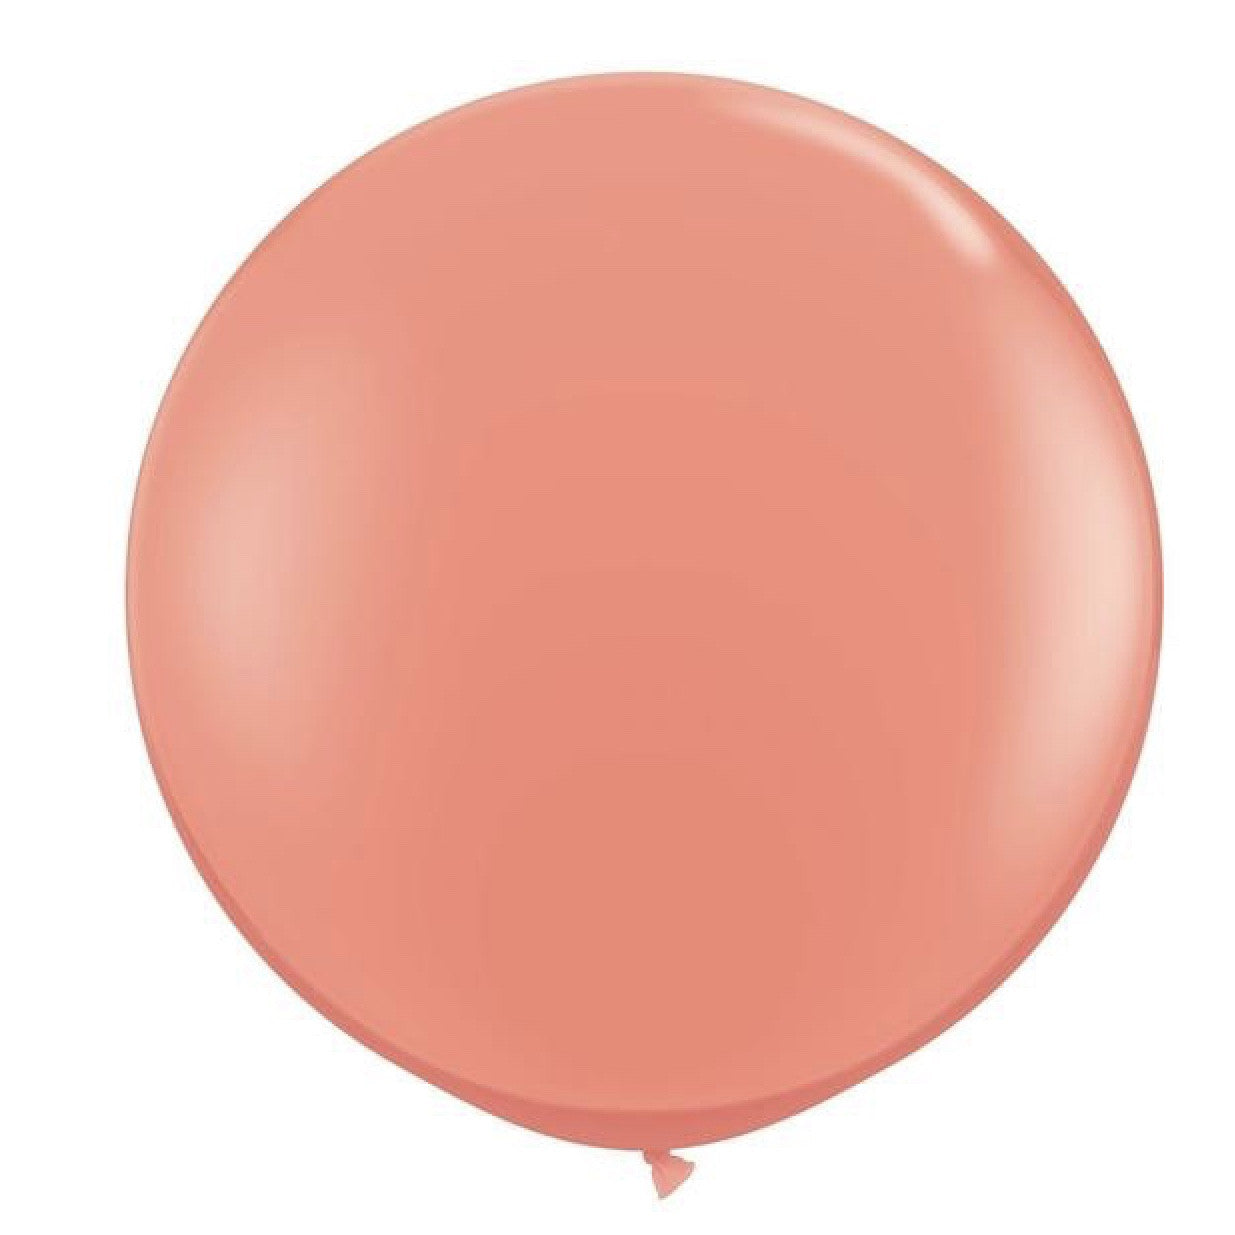 "Giant Round Balloon 36""- Coral, SE-Surprize Enterprize, Putti Fine Furnishings"